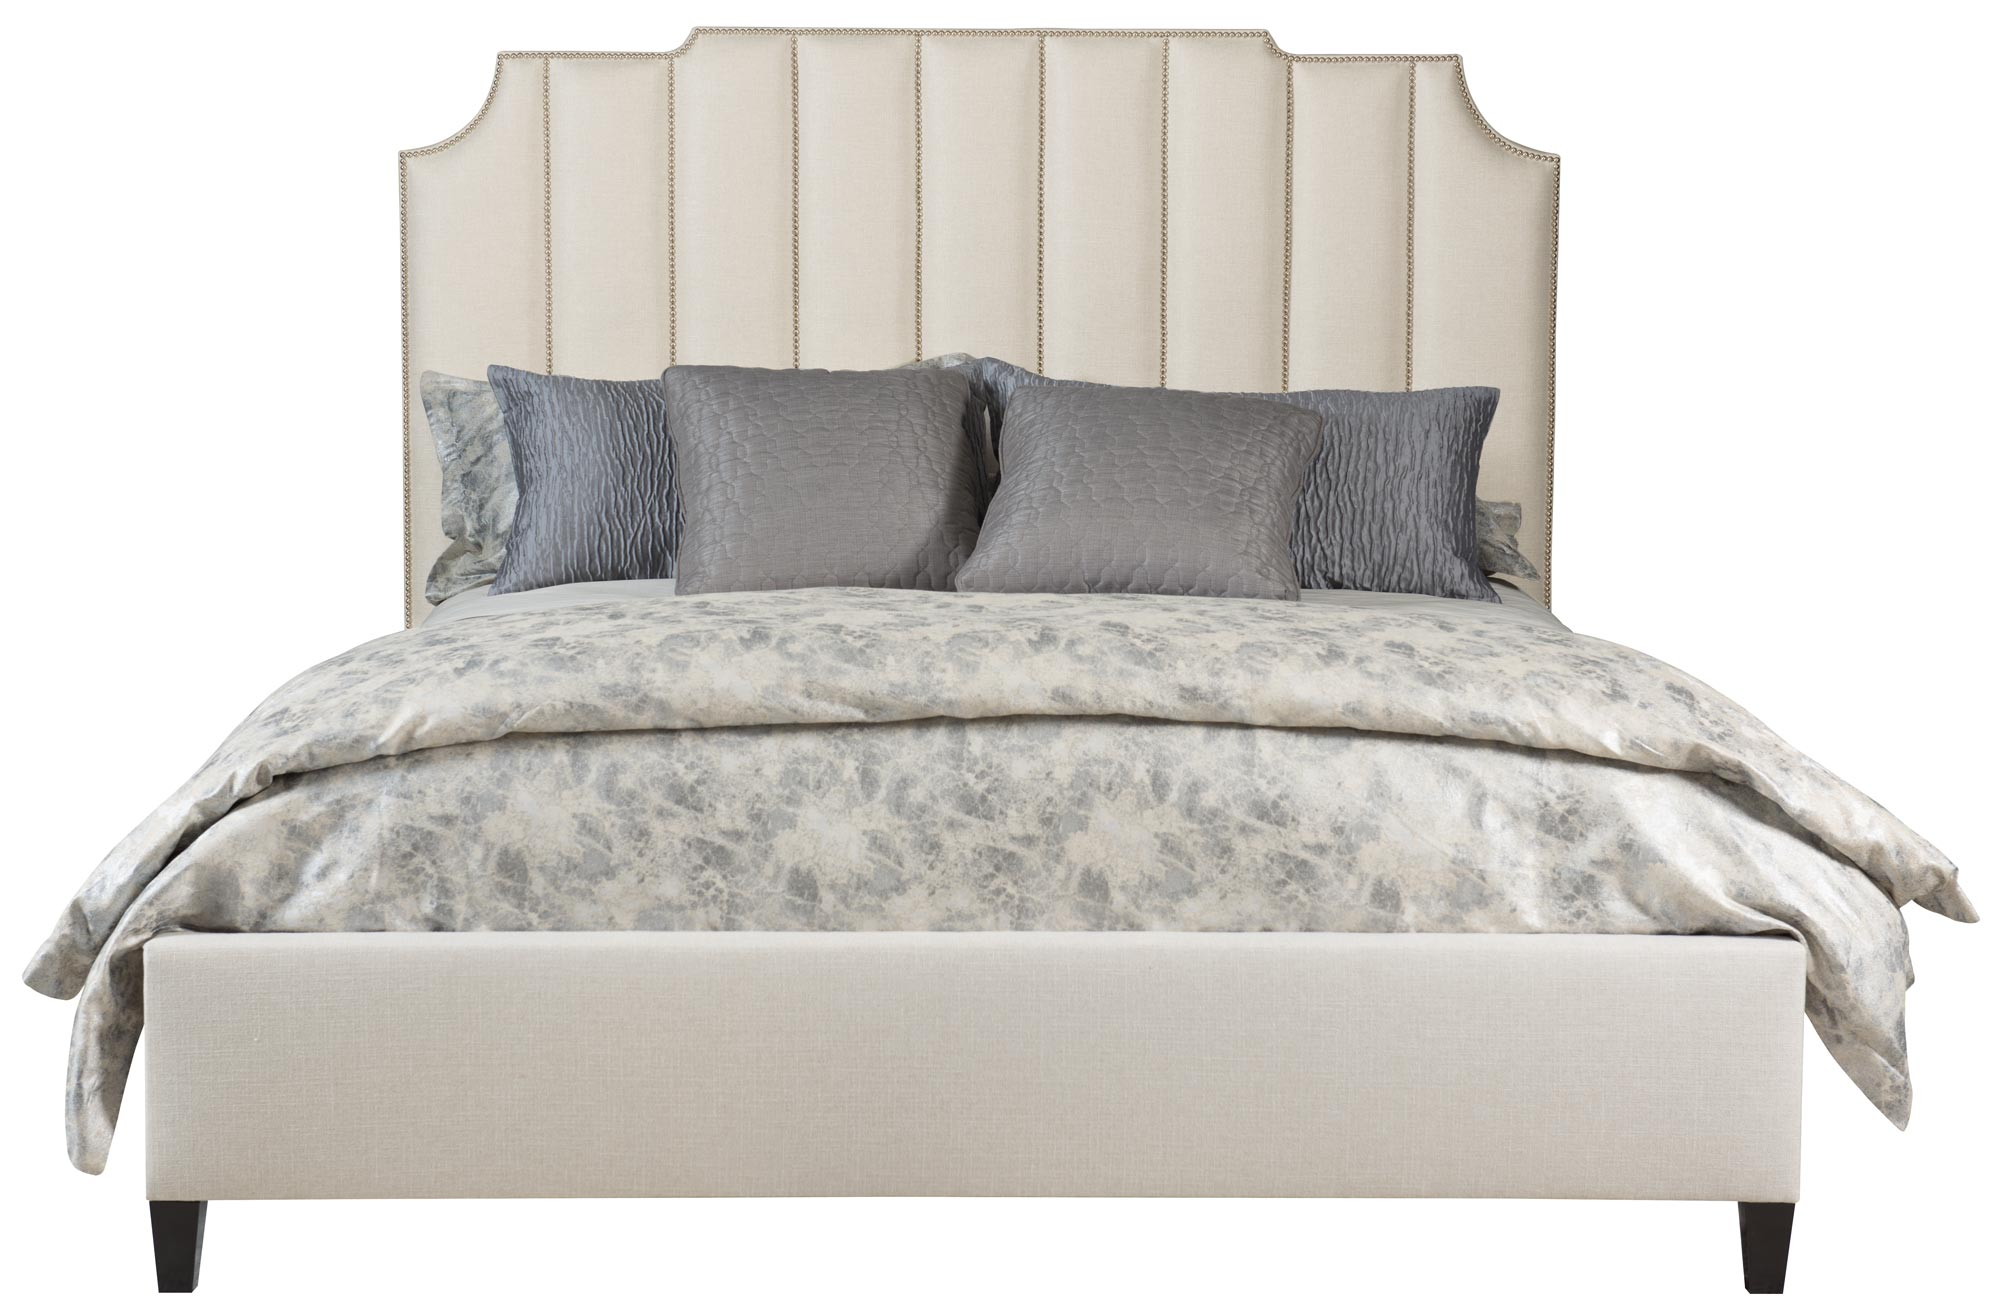 Bayonne Upholstered Bed Low Footboard King Bedding